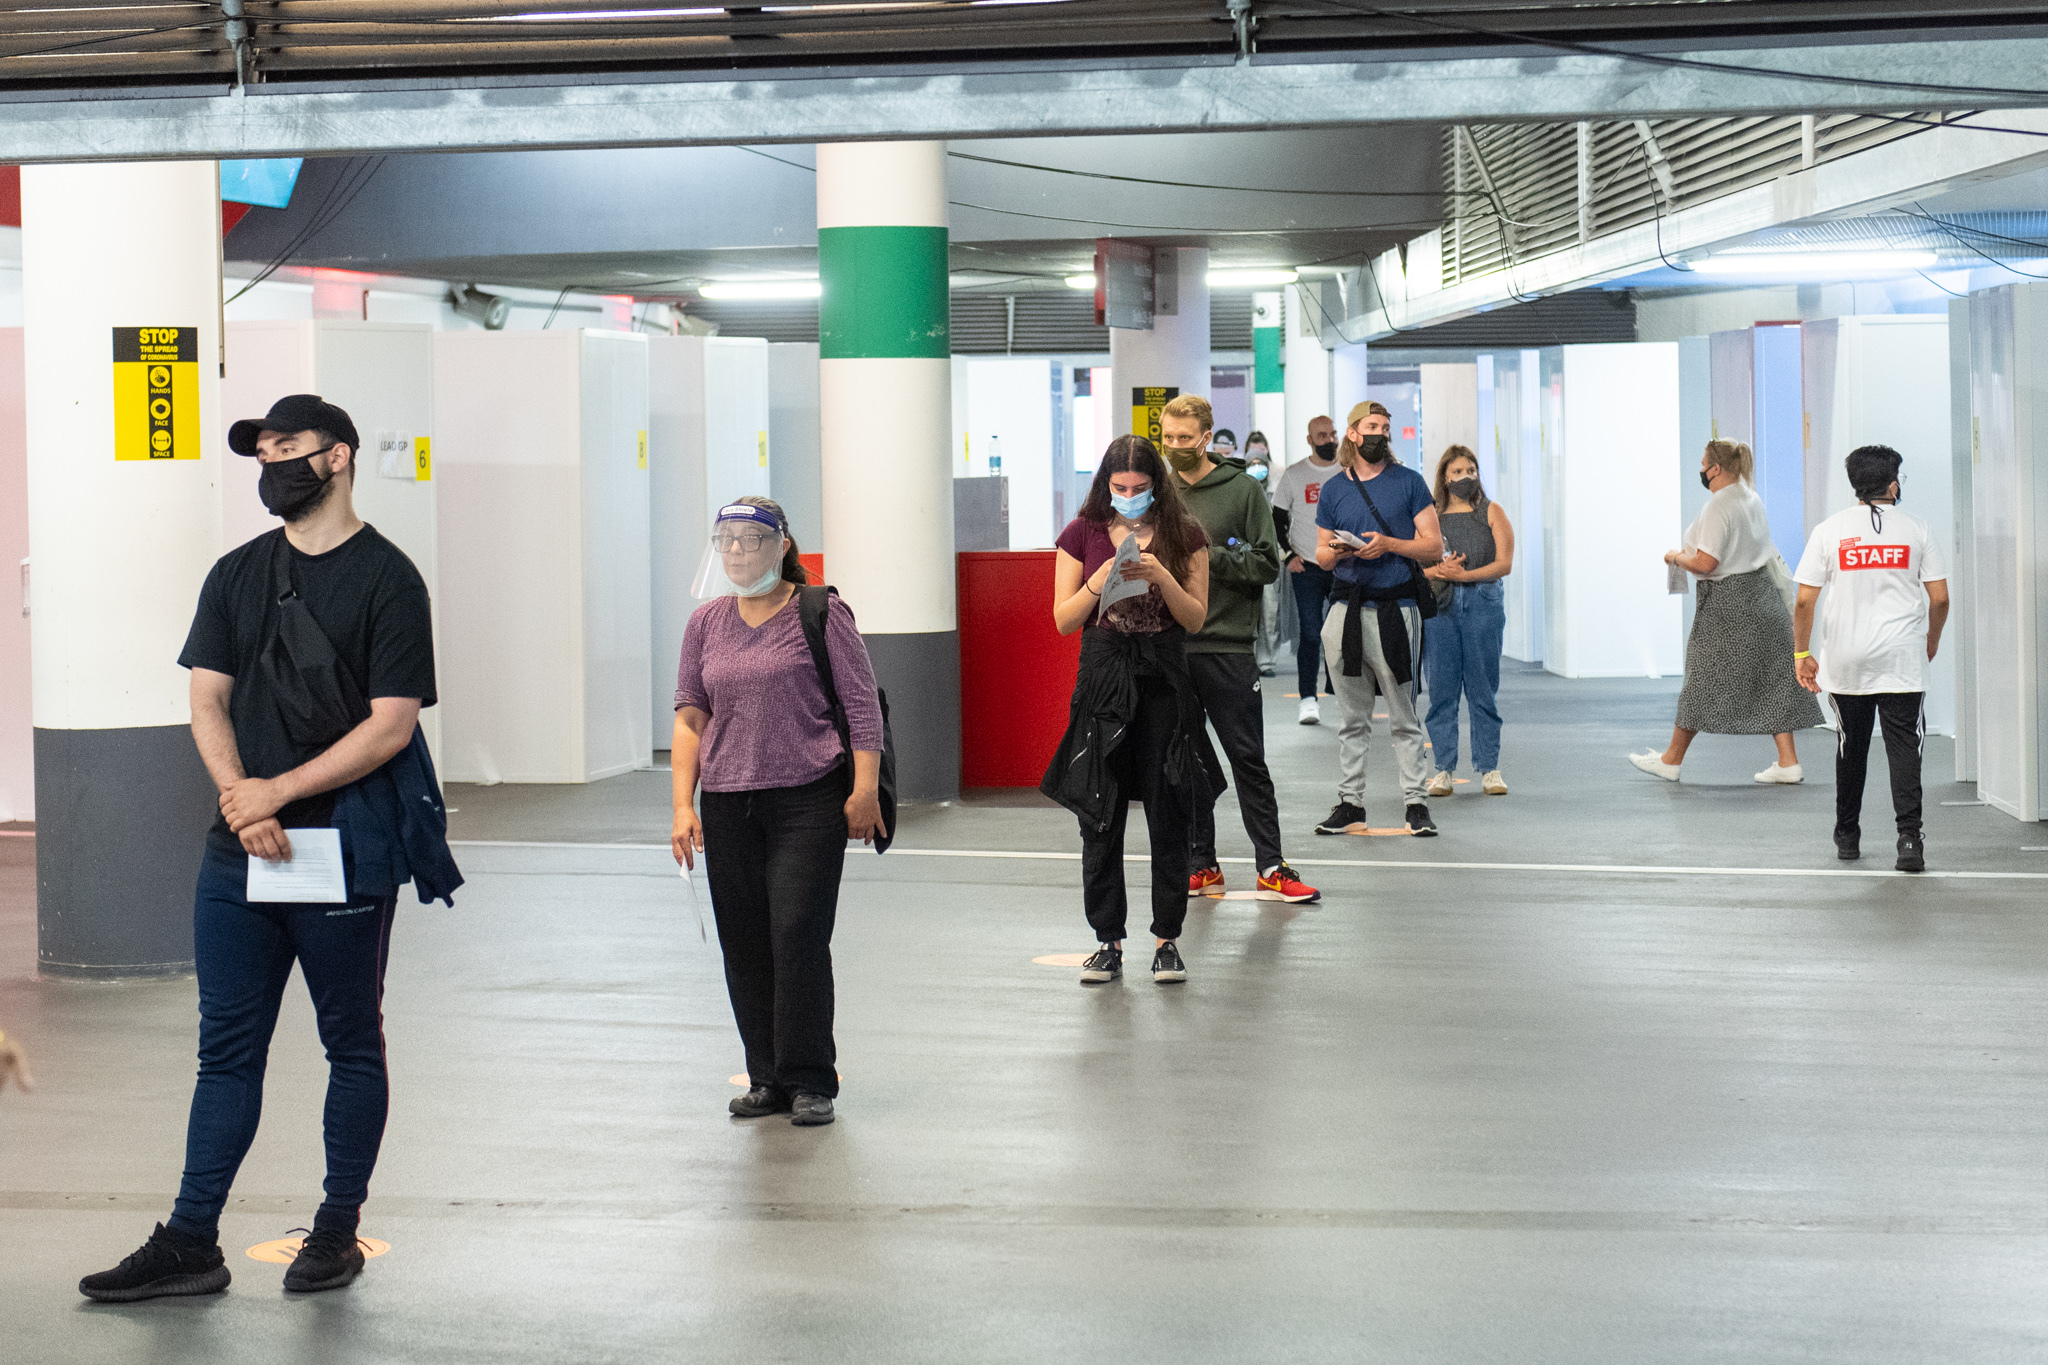 <p>People queue inside a mass coronavirus vaccination centre at Arsenal's Emirates Stadium, in north London, run by Islington Council and Islington GP Federation in partnership with Arsenal Football Club. Picture date: Friday June 25, 2021.</p>